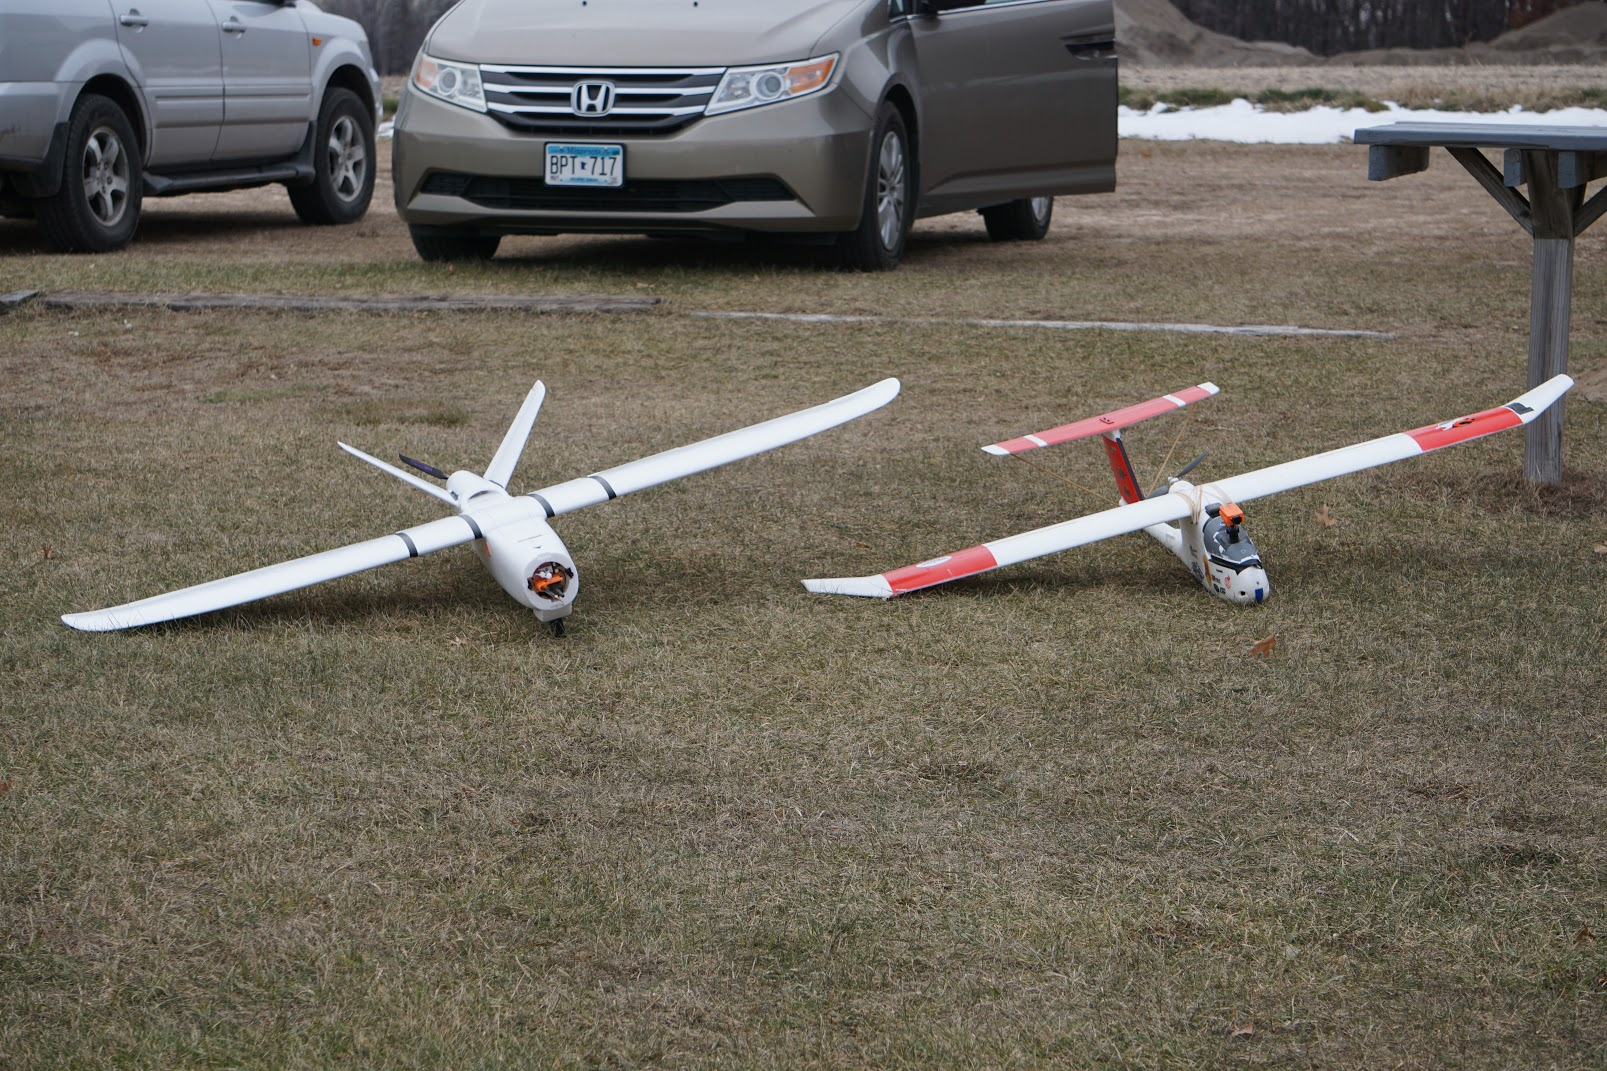 Here is my brand new XUAV Talon (V tail) next to my battle tested skywalker (T tail).